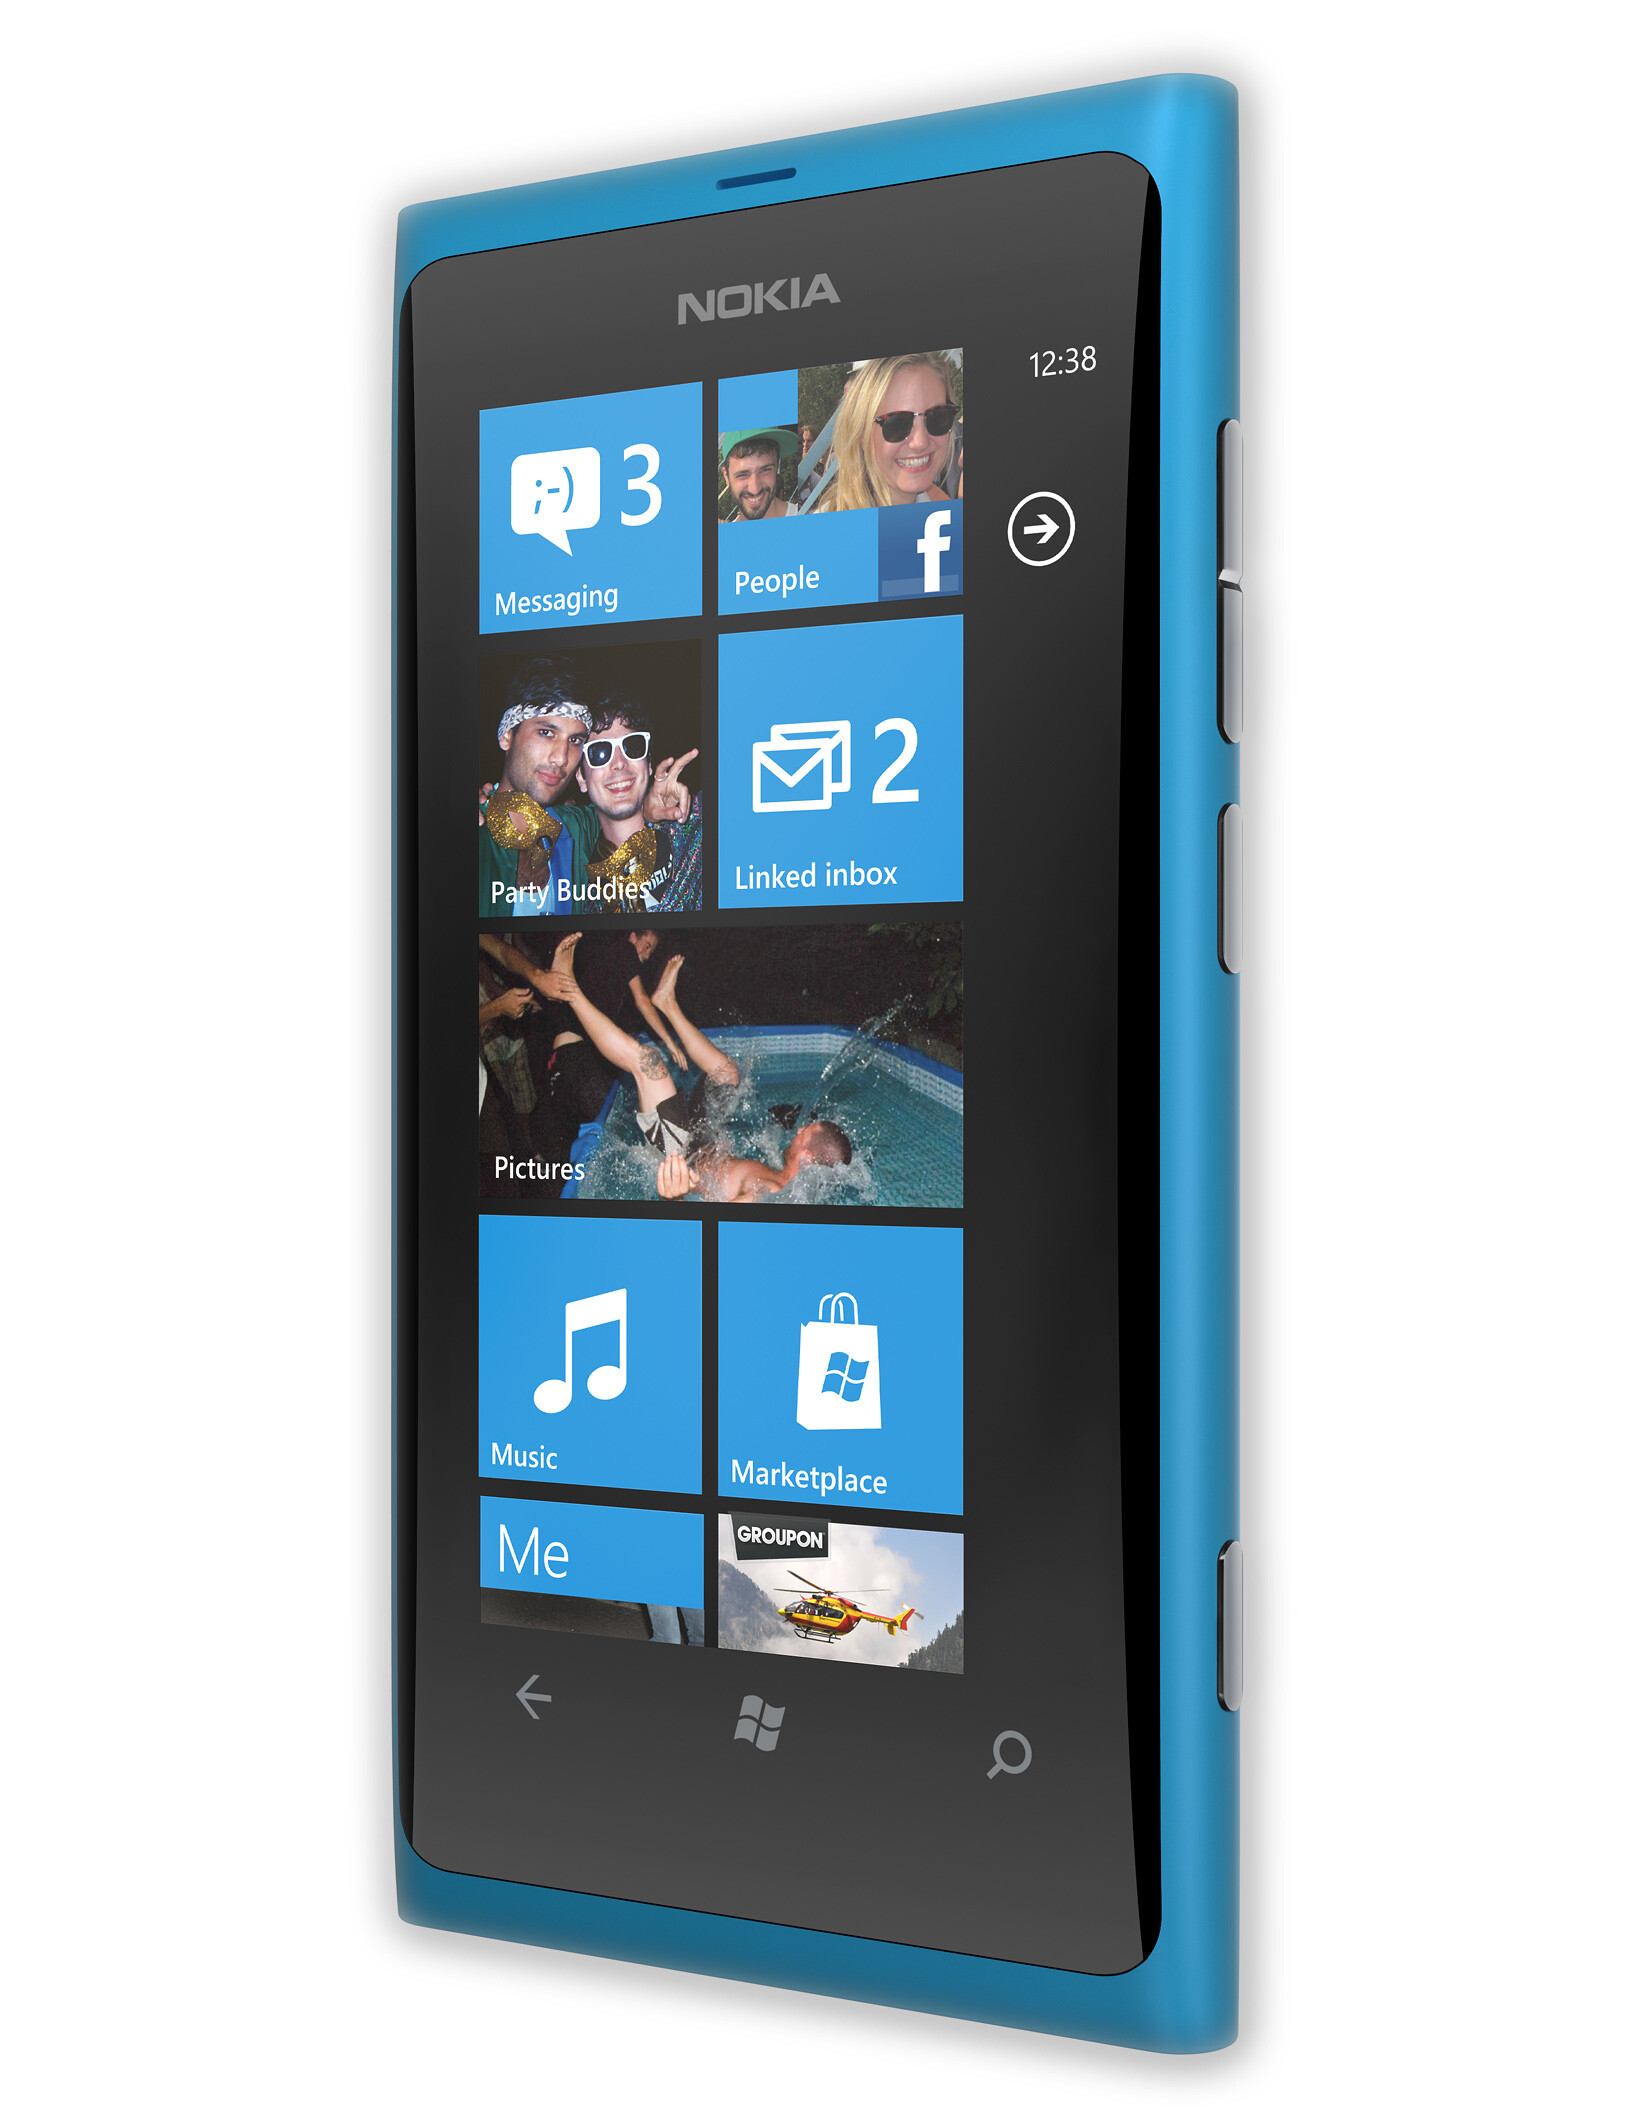 nokia lumia 800 specs. Black Bedroom Furniture Sets. Home Design Ideas